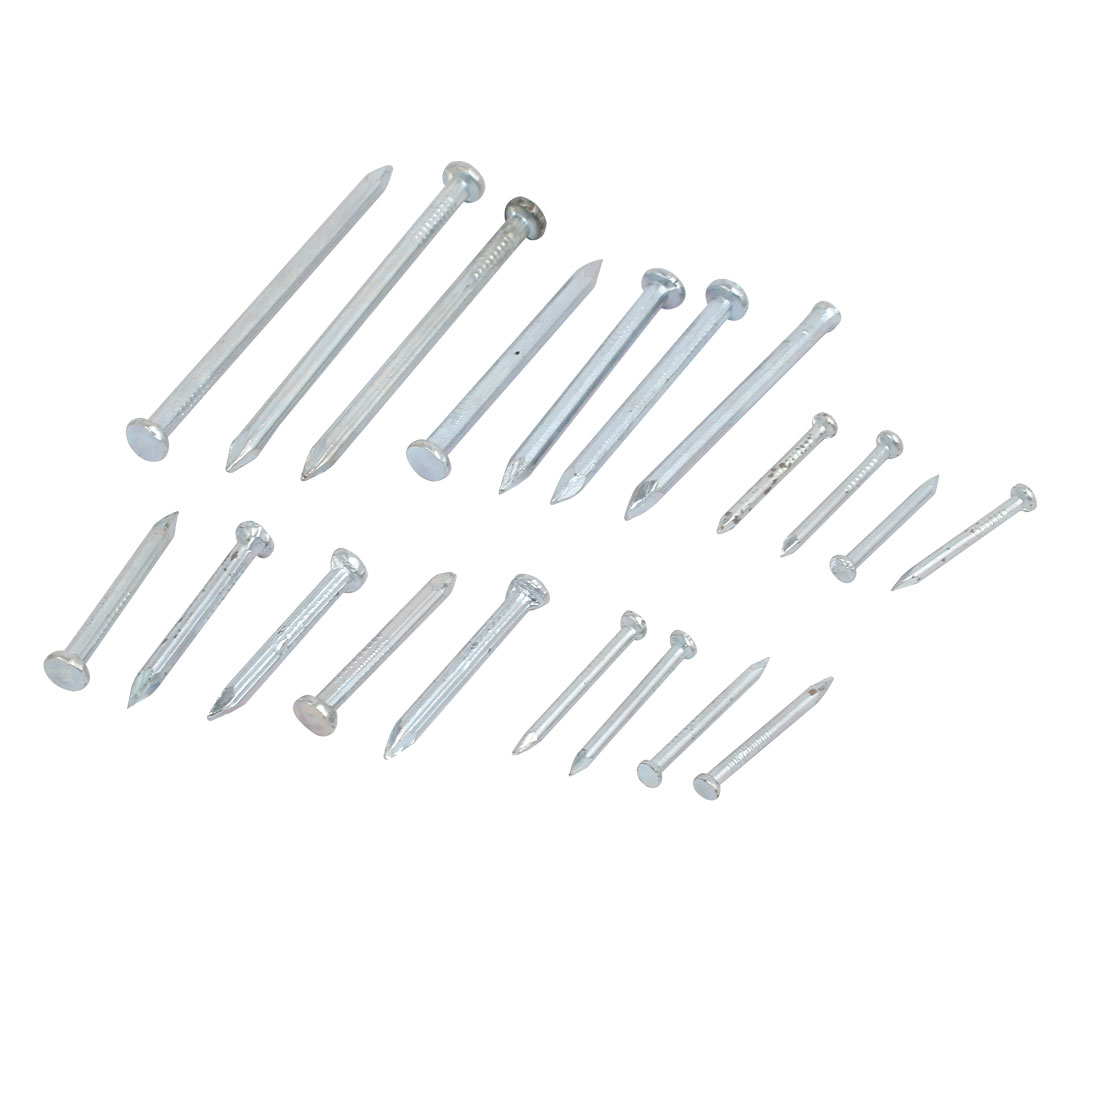 20 in 1 Point Tip Concrete Cement Wire Nail Set Silver Tone